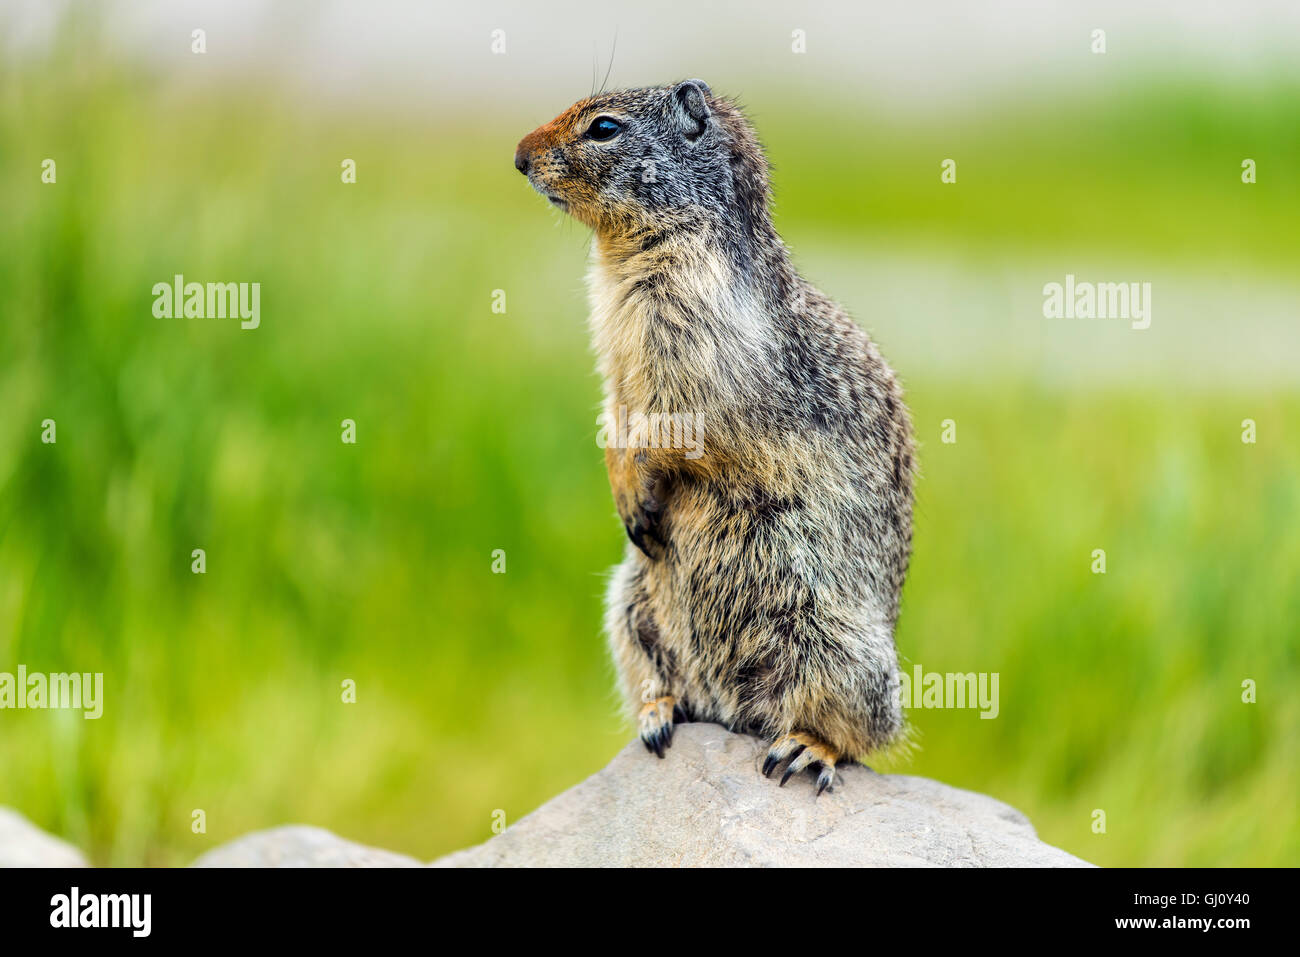 Columbian ground squirrel or Urocitellus columbianus, Banff, Alberta, Canada - Stock Image